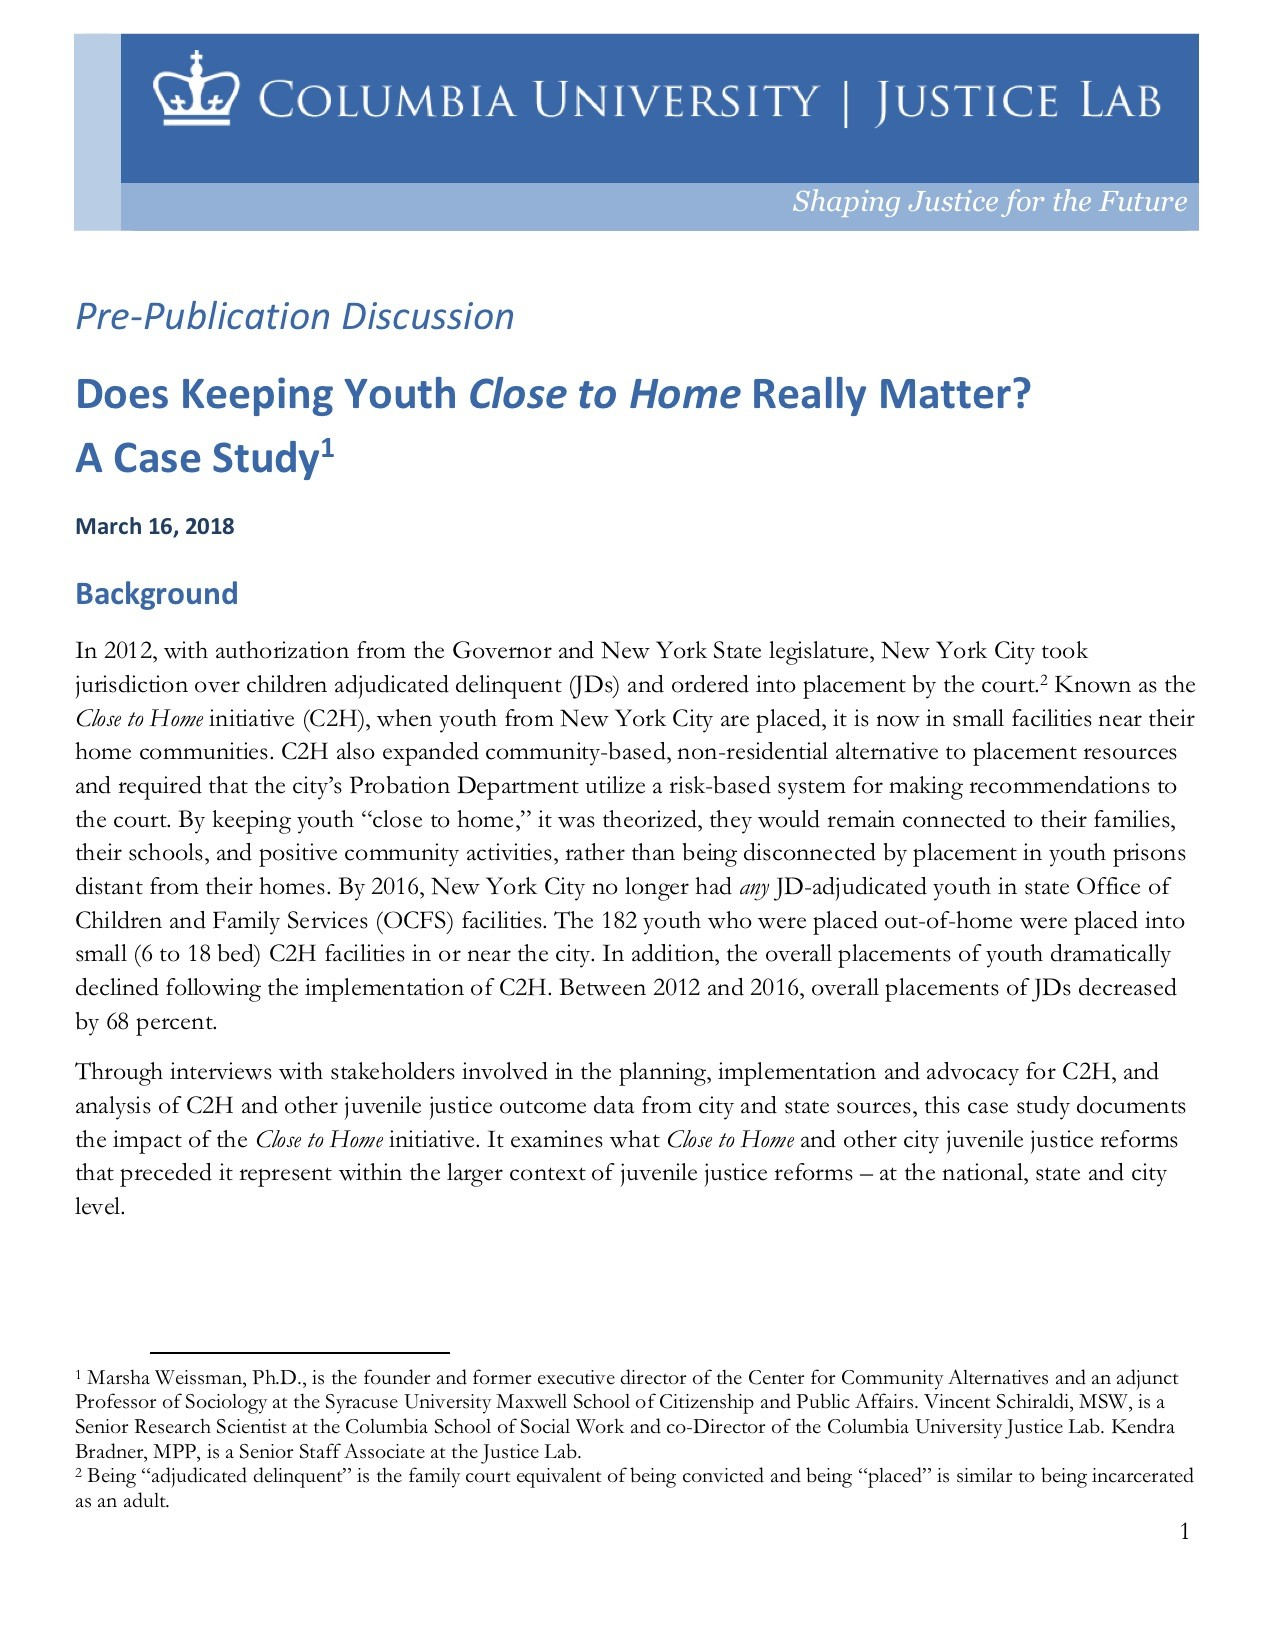 Does keeping youth Close to Home really matter? A Case Study Pre-publication Discussion